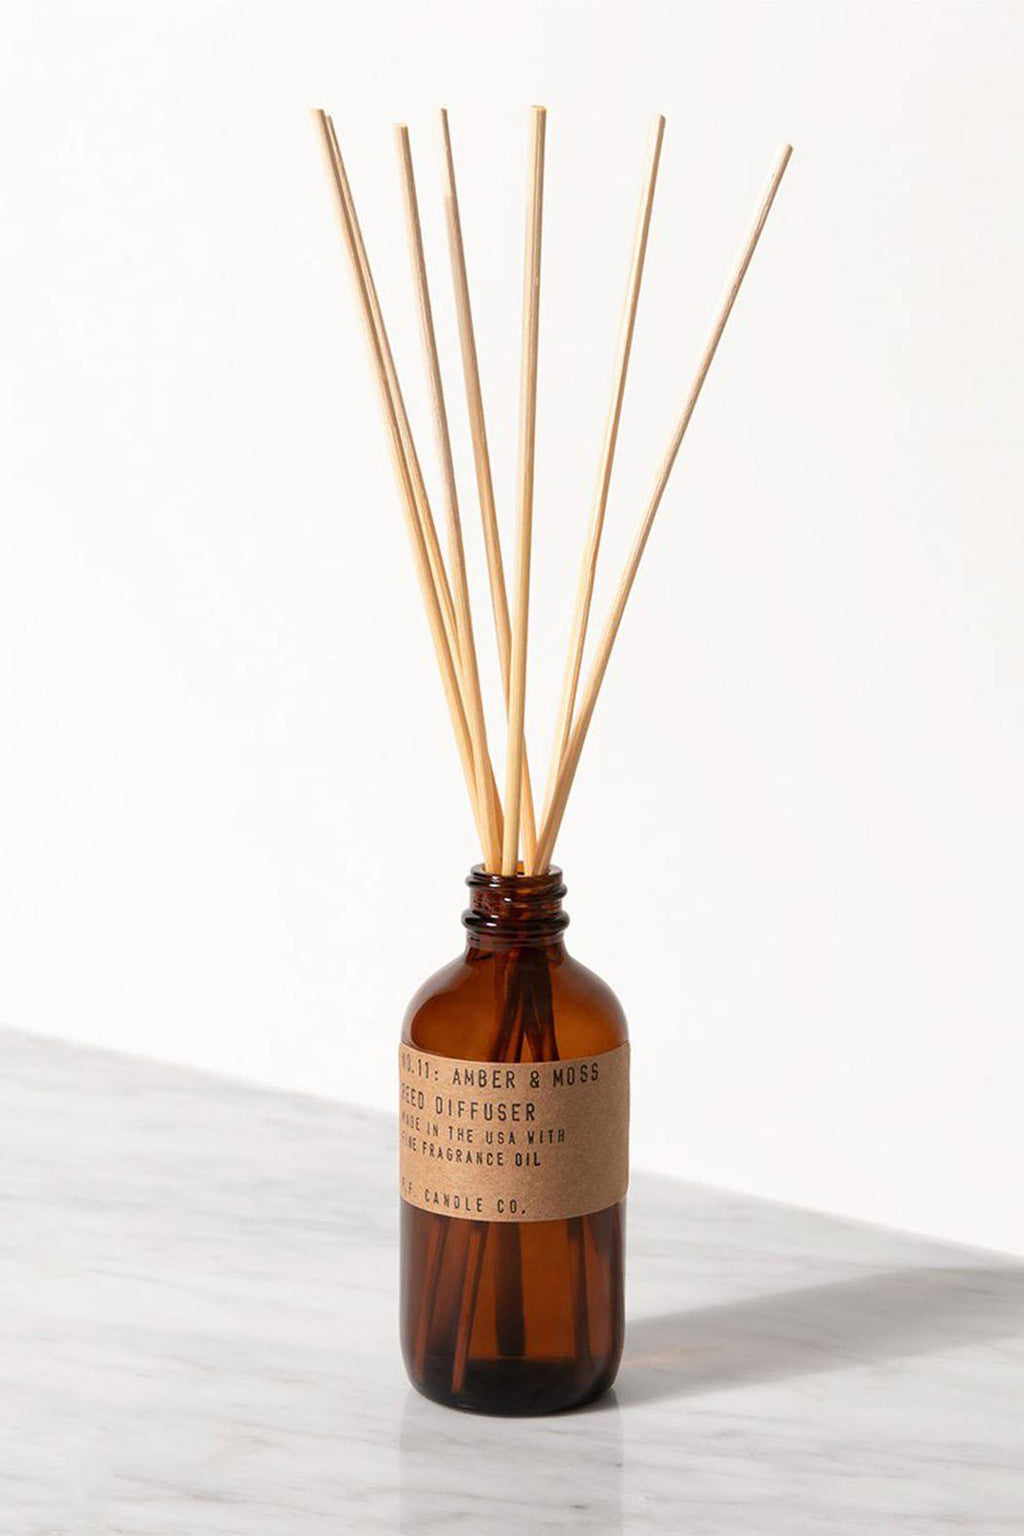 P.F. Candle Co. Amber & Moss Diffuser